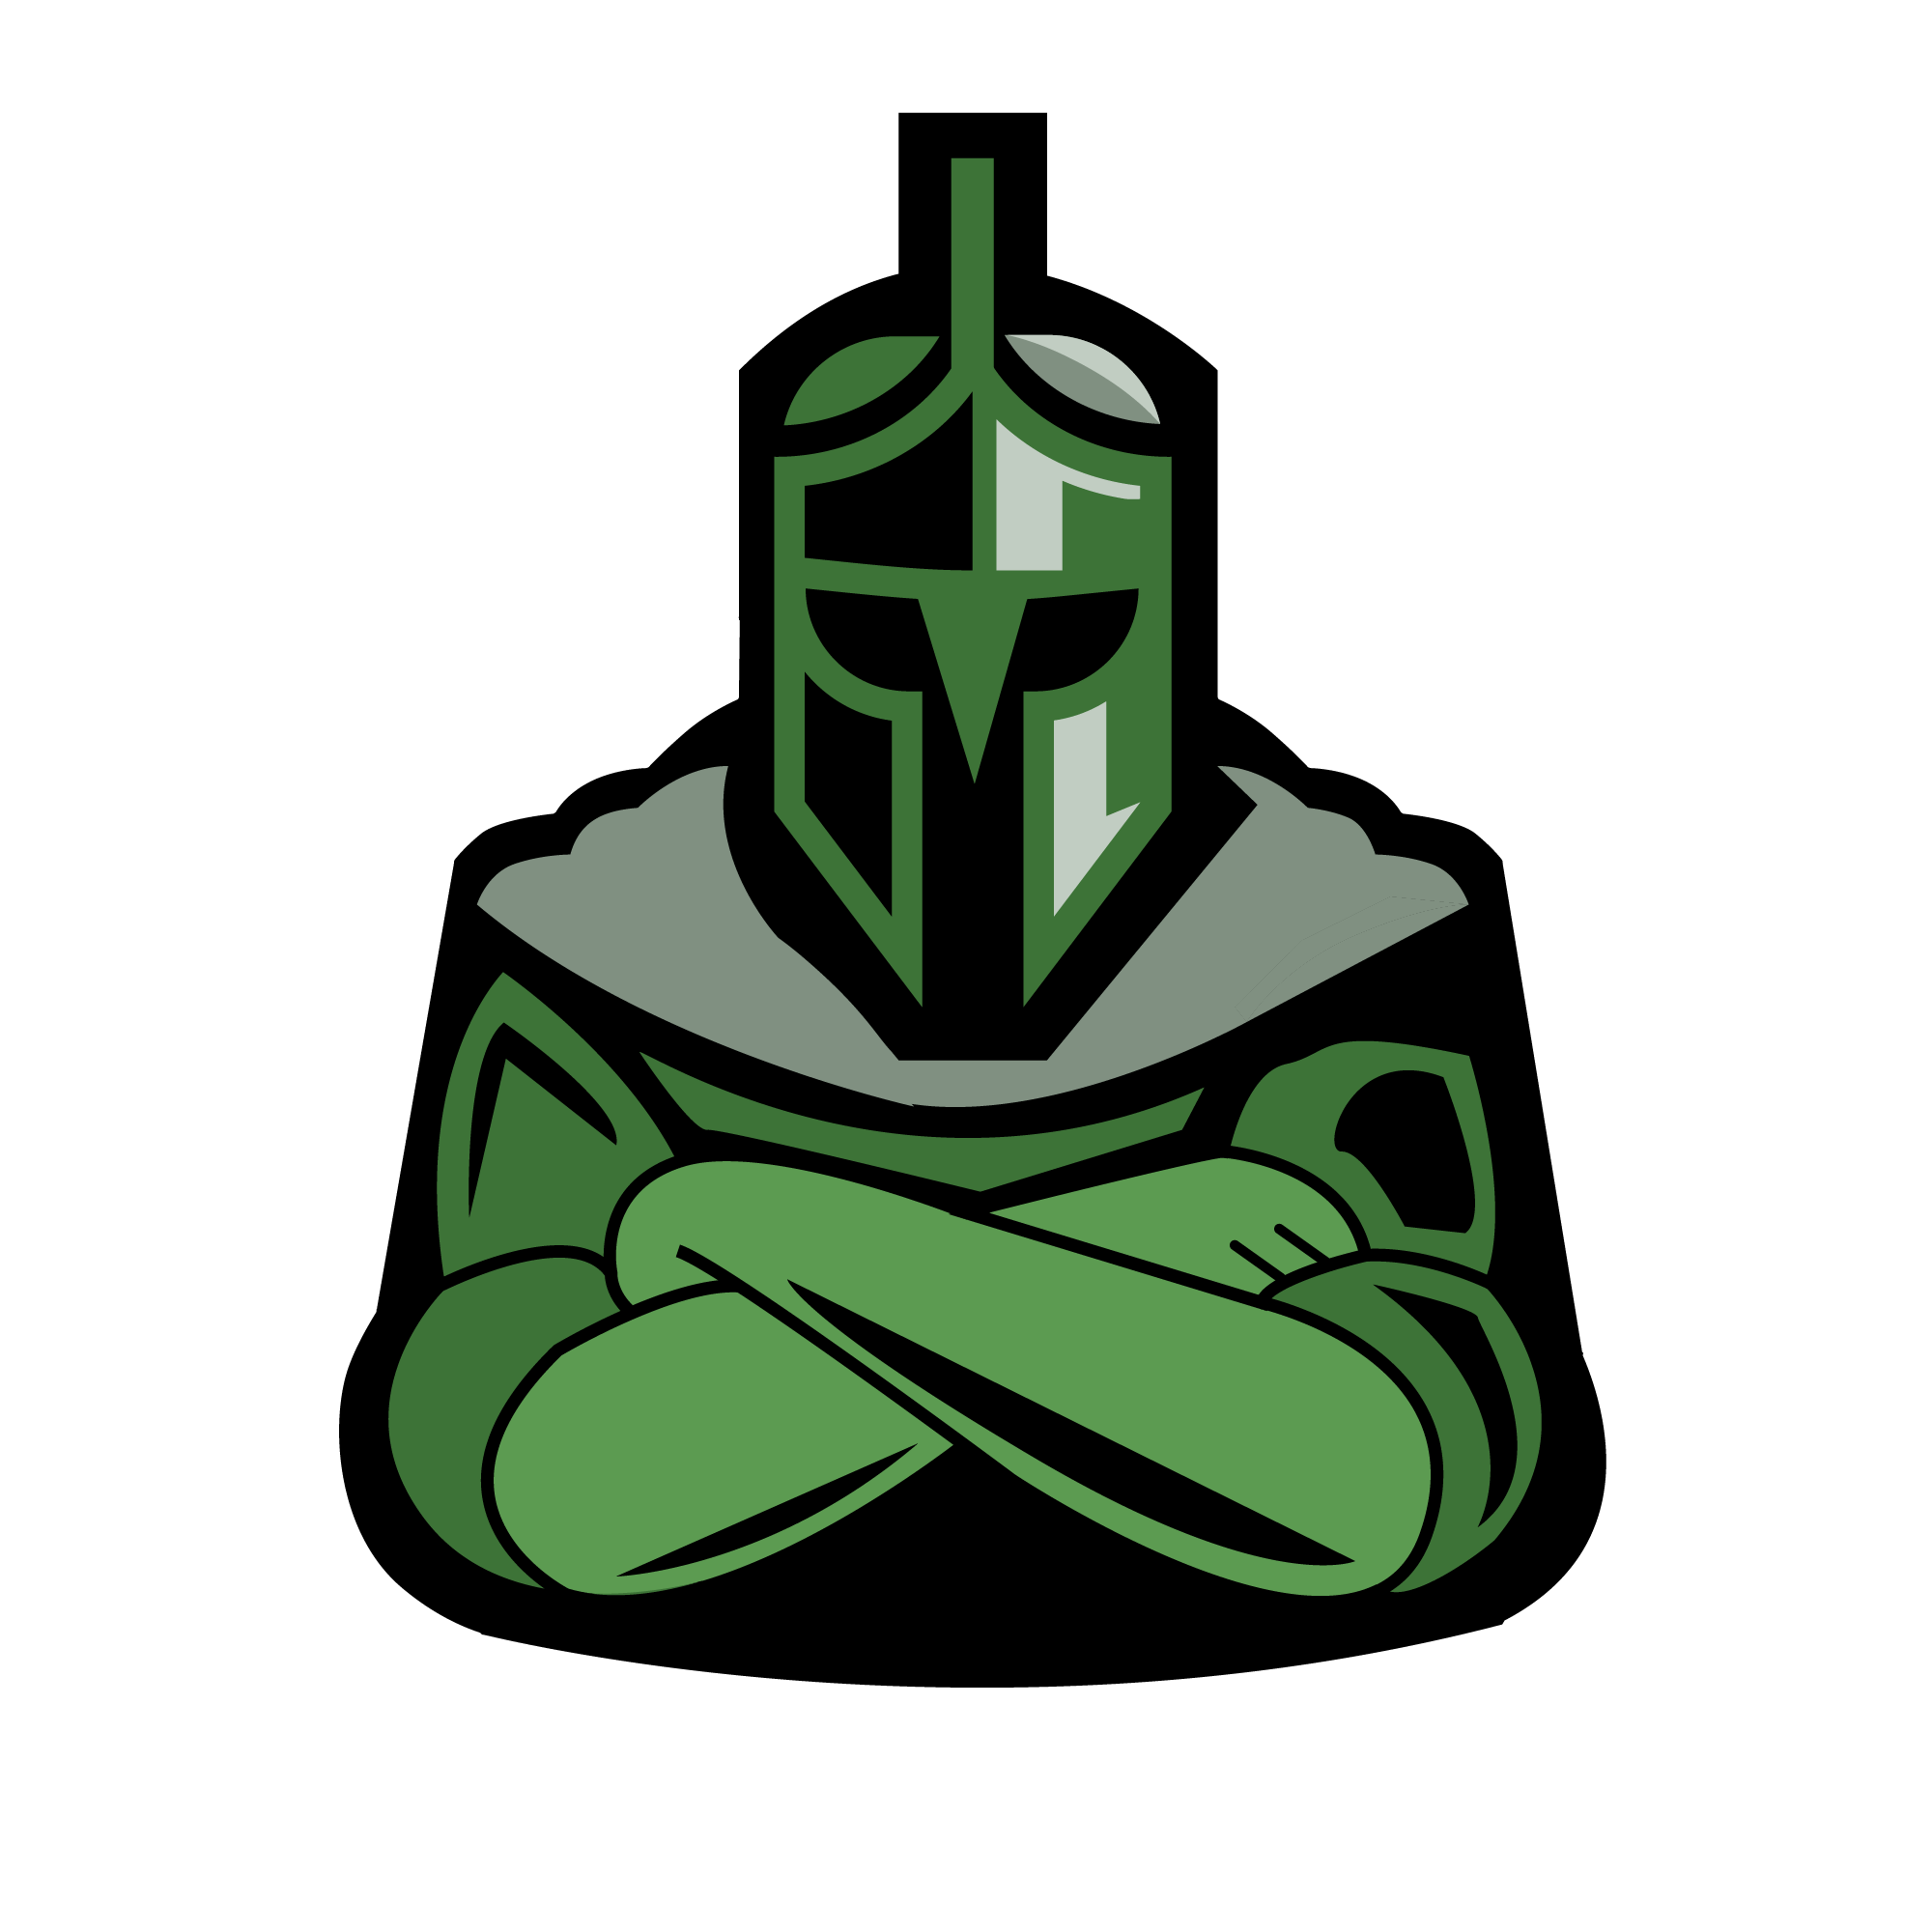 Custom metal roofing company. Knight clipart green knight